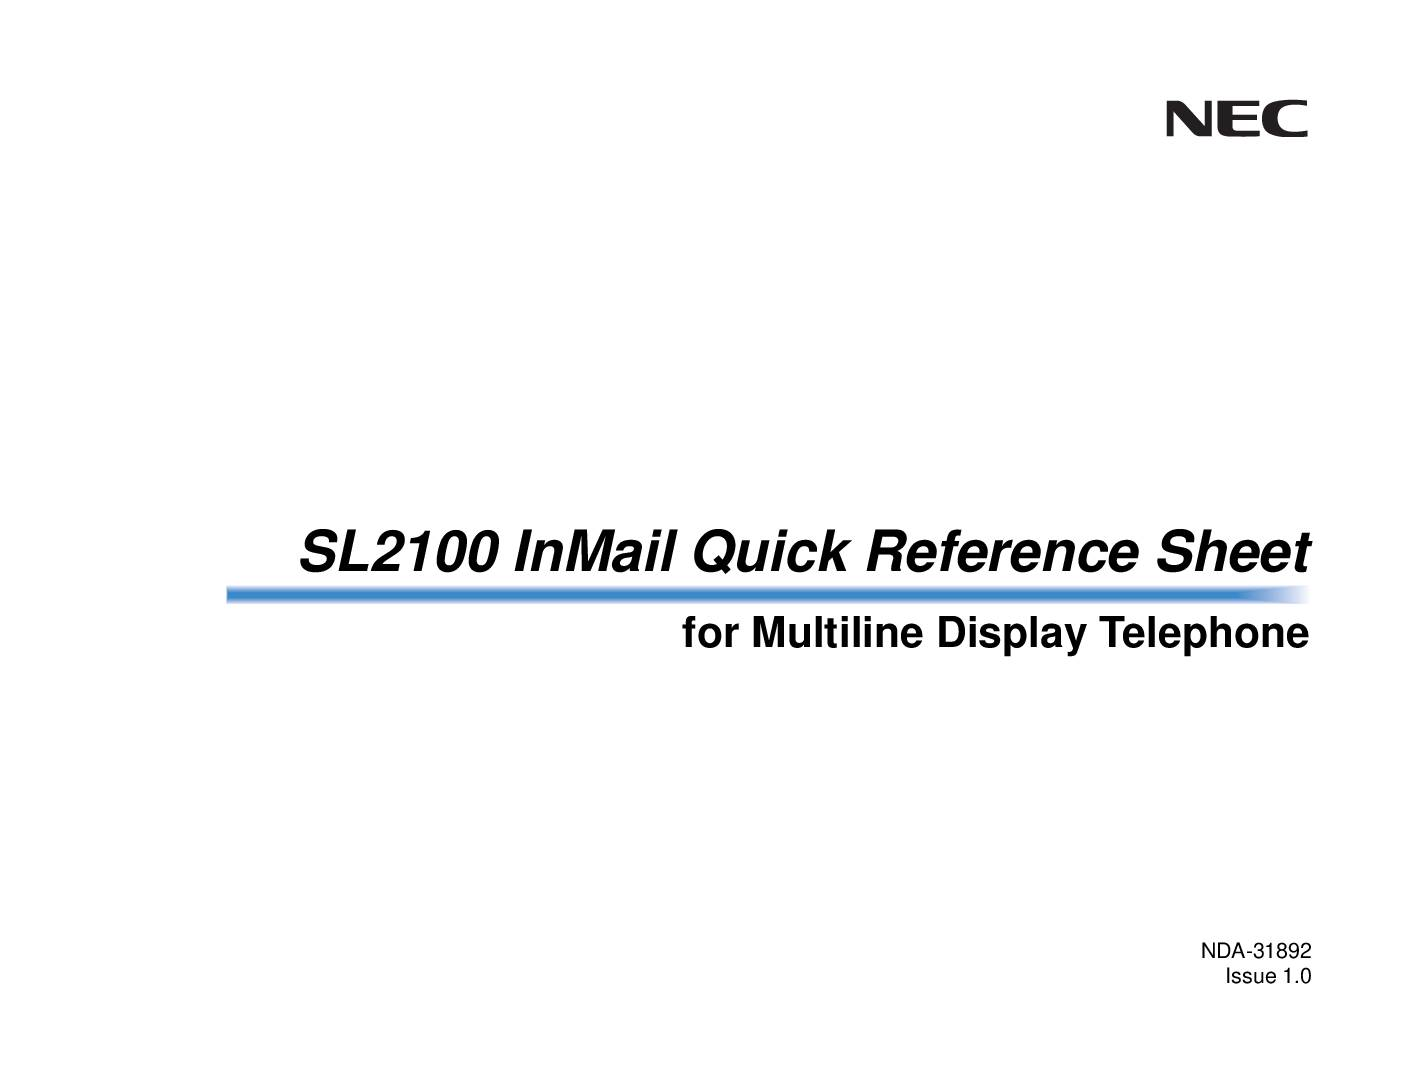 SL2100 InMail Reference Sheet for MultilineTel